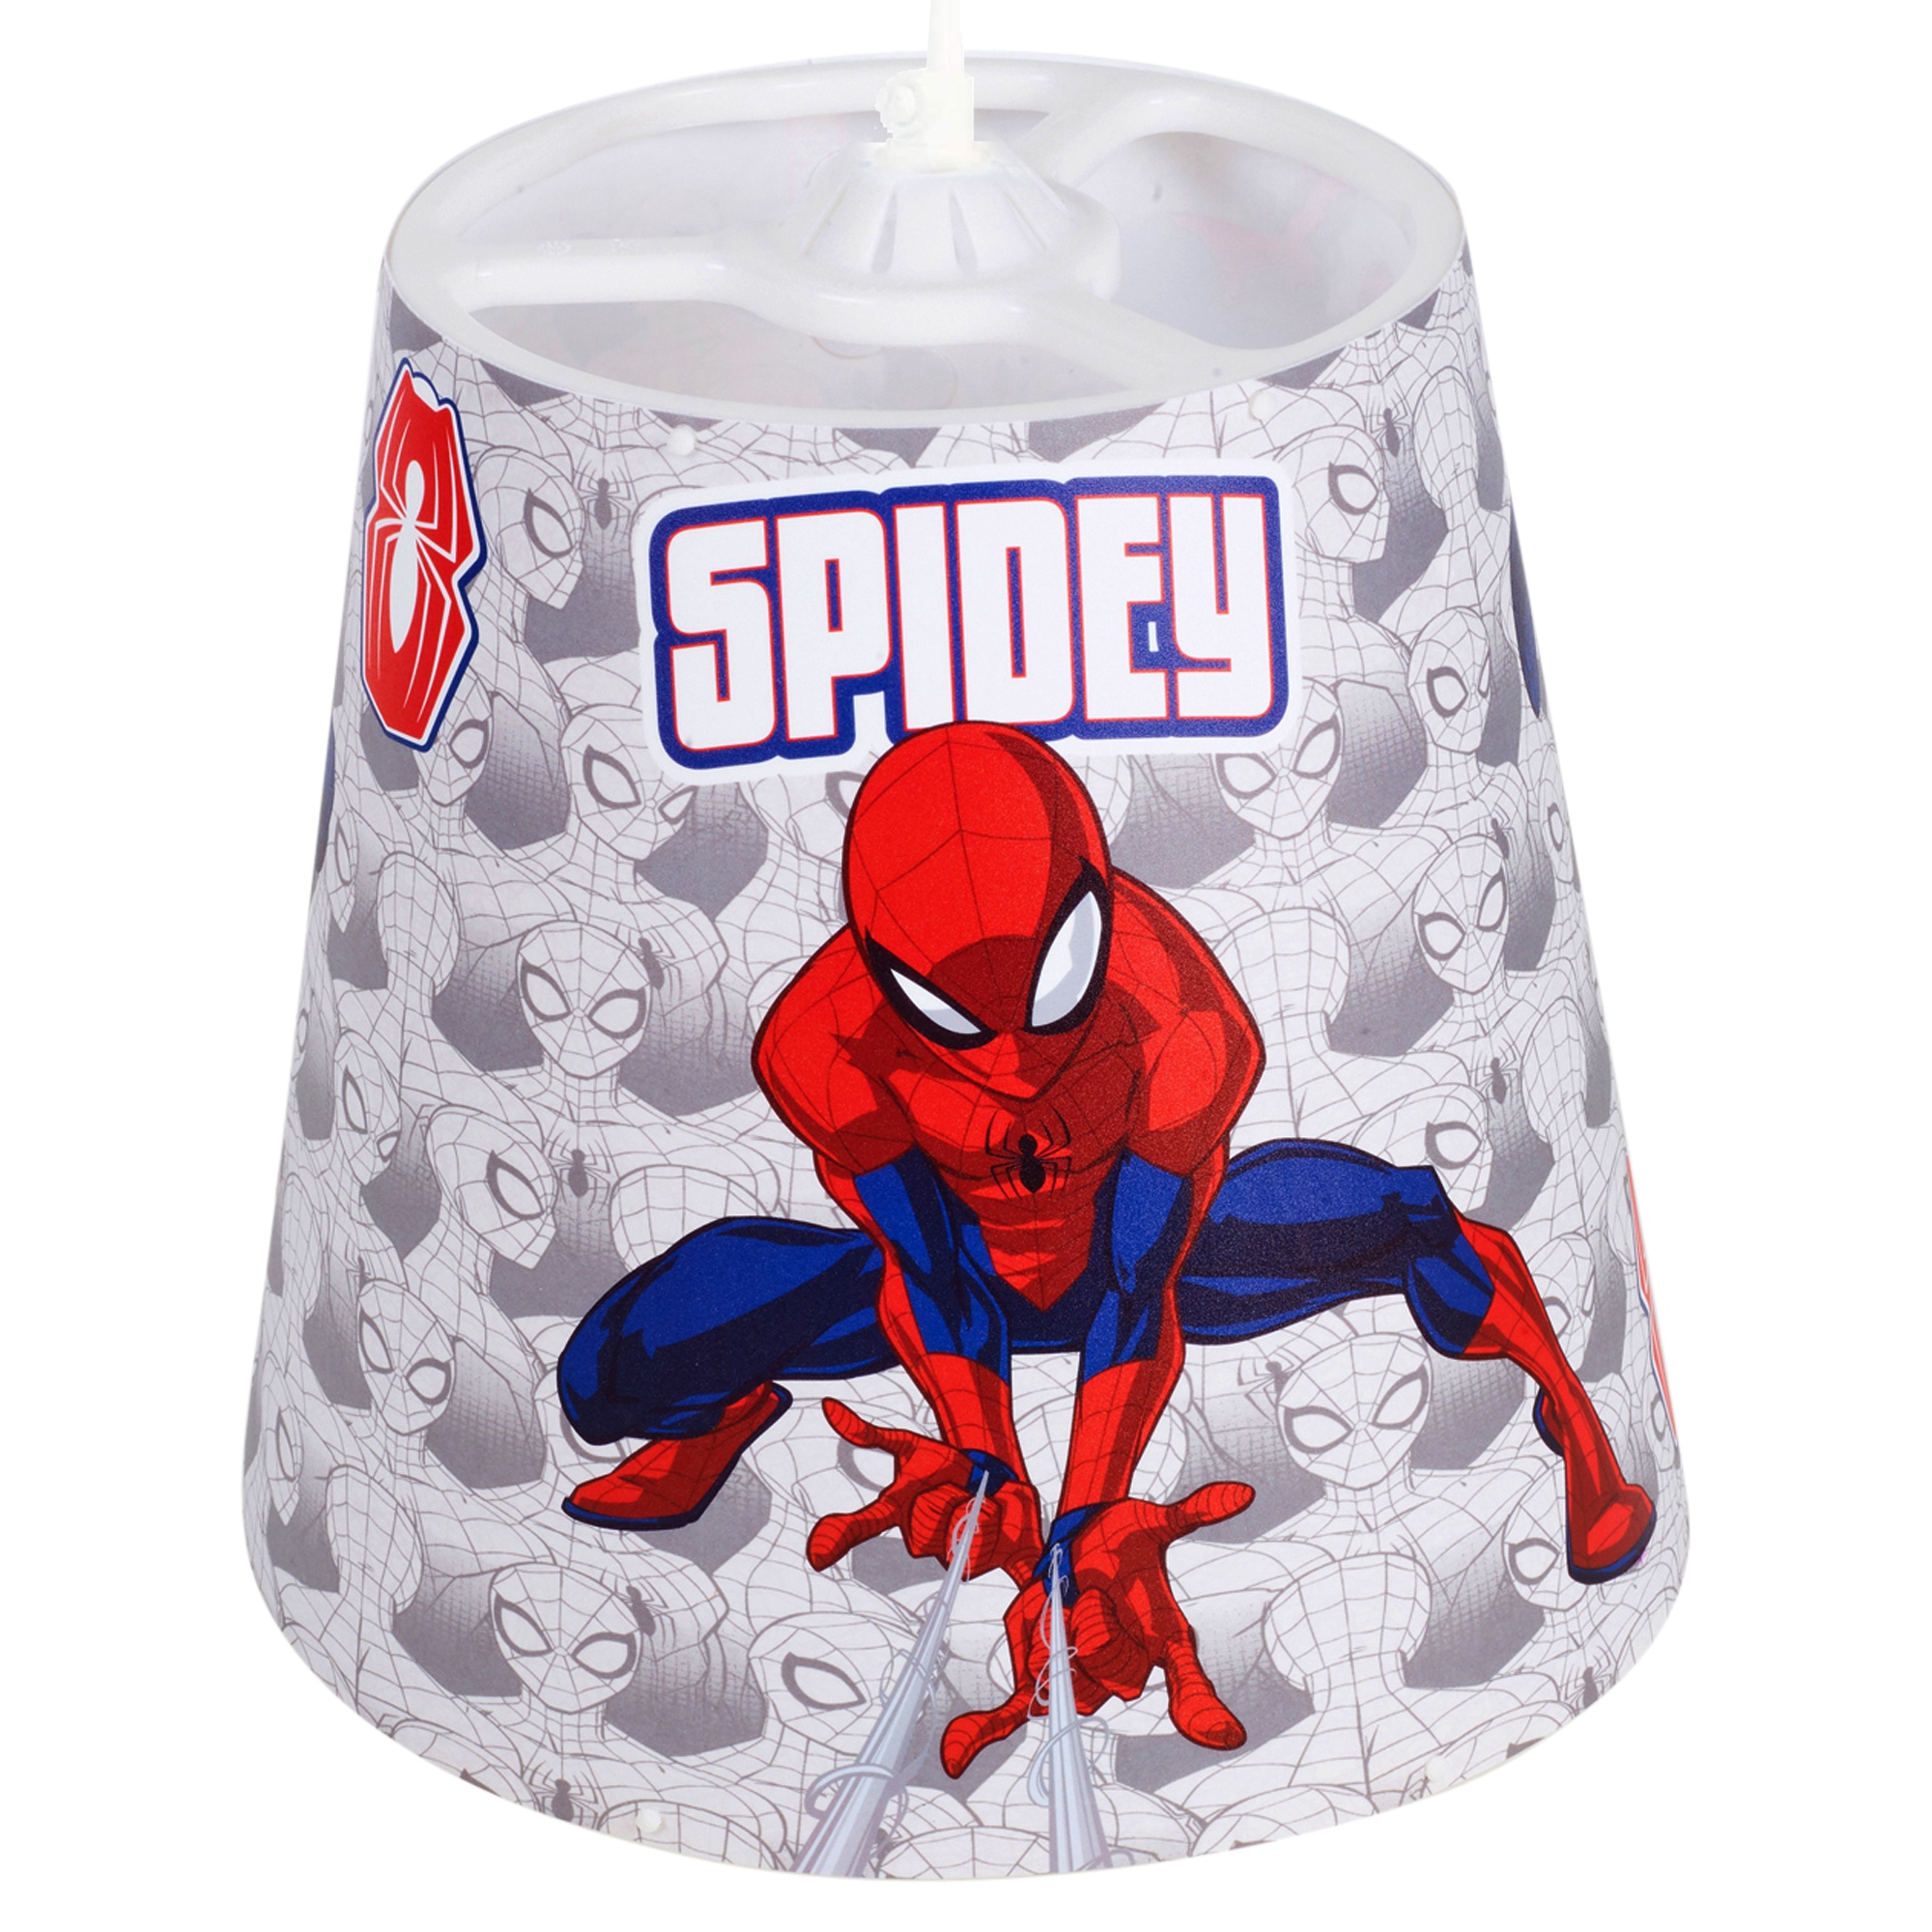 Details about Marvel Spiderman Lampshade Ceiling Children\'s Bedroom Fabric  Night Light Shade